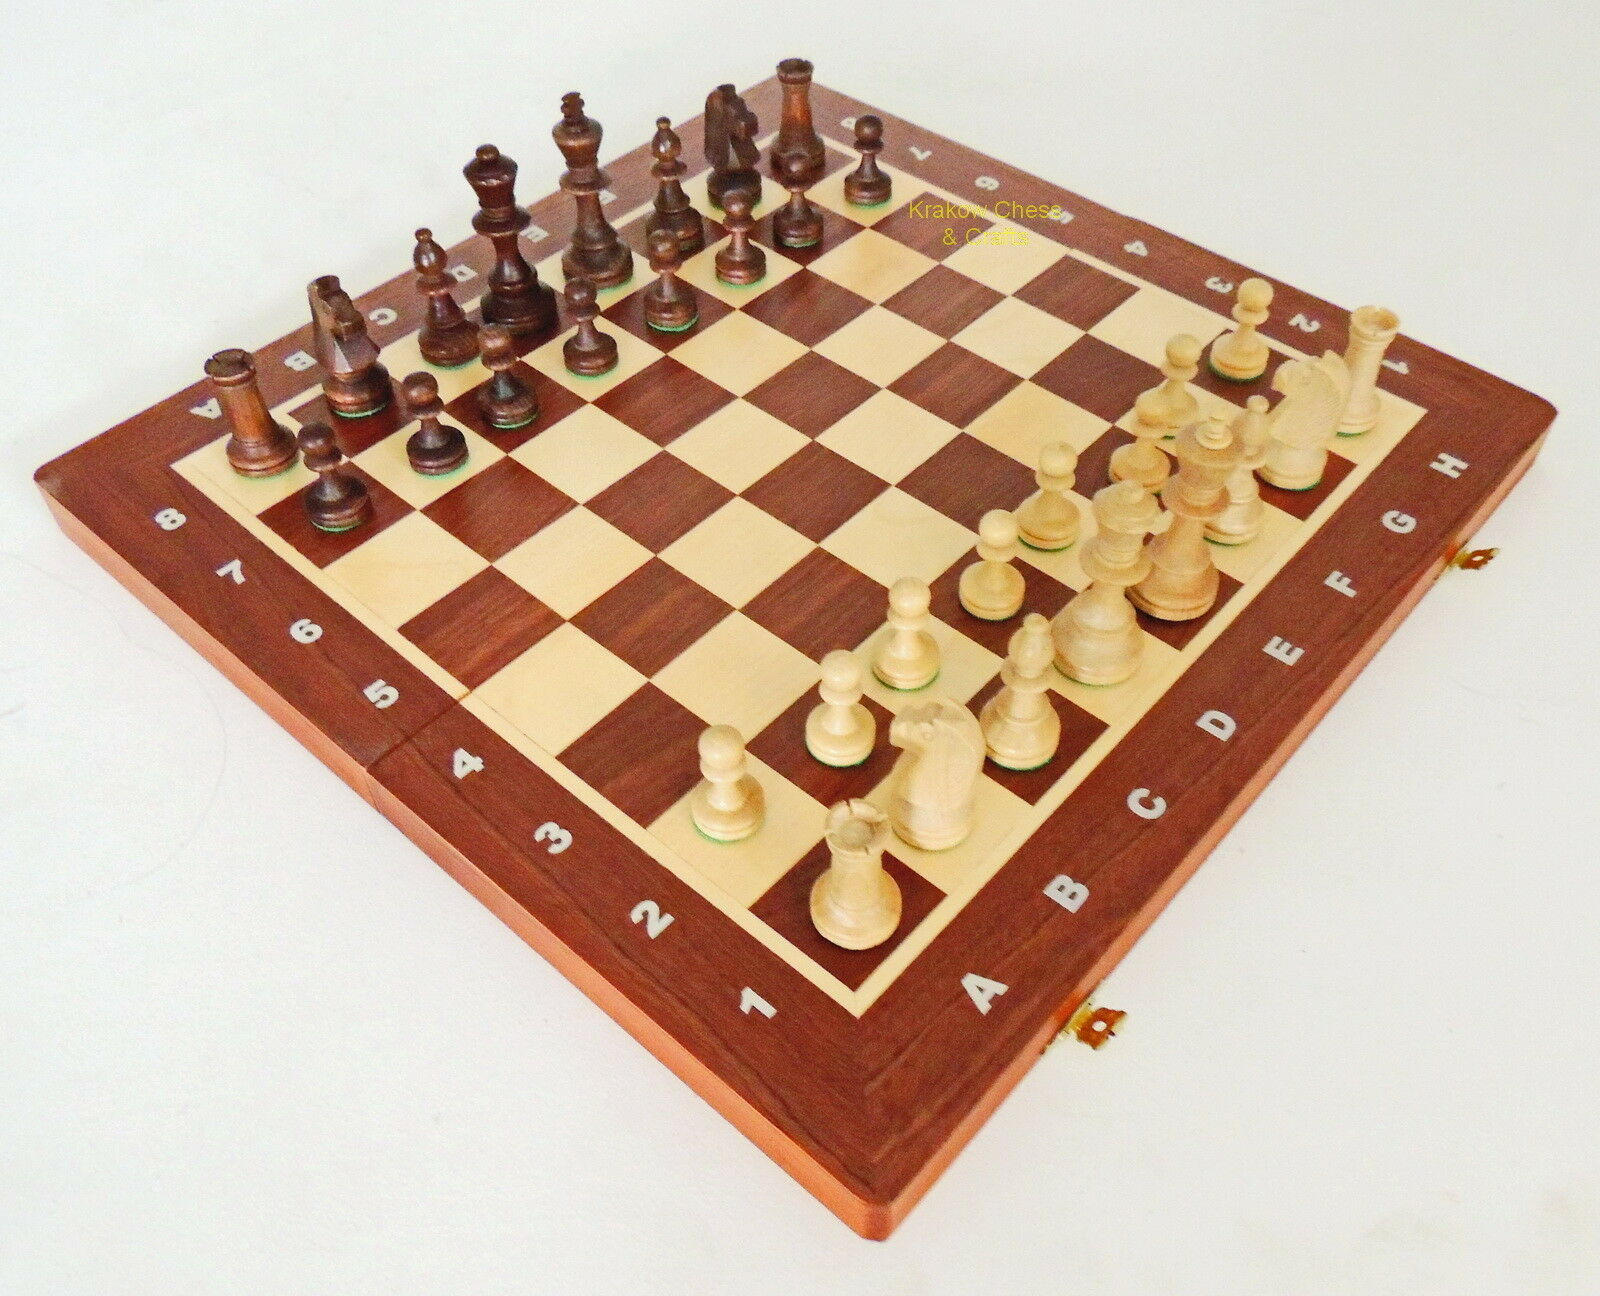 BRAND NEW WEGIEL TOURNAMENT NR 4 4 4 WOODEN CHESS SET 40cm WITH WEIGHTED PIECES 4391d2